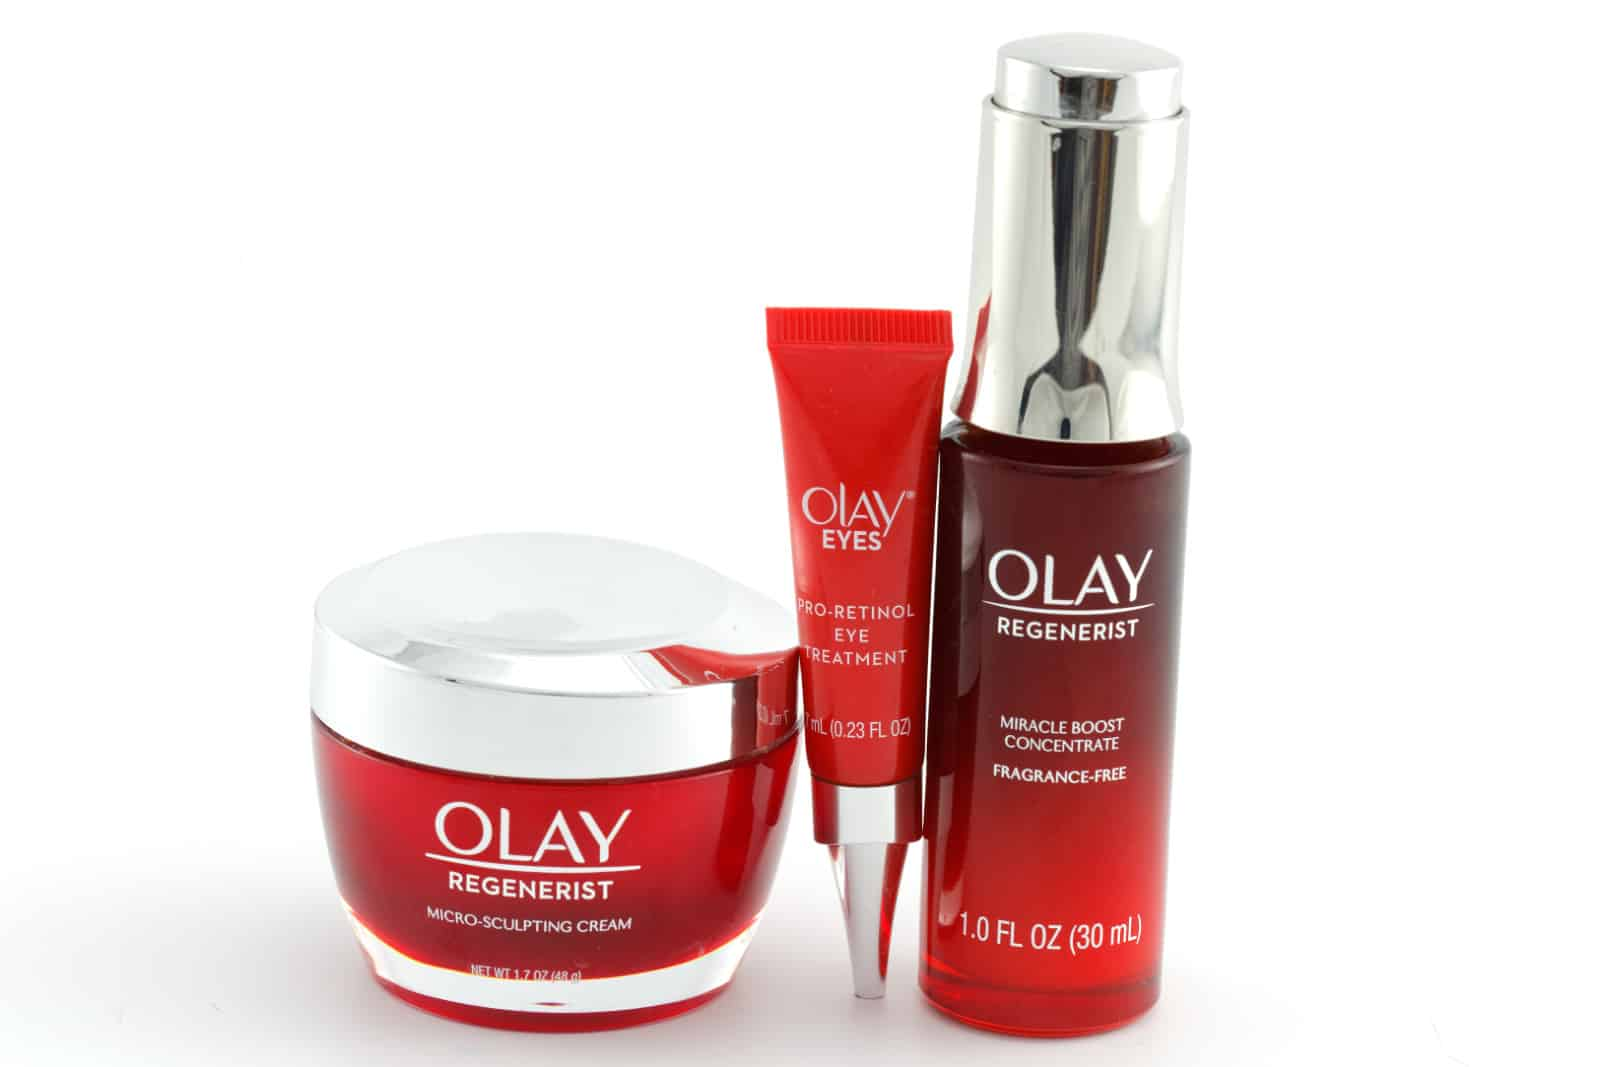 Review Olay Regenerist The Style Bouquet